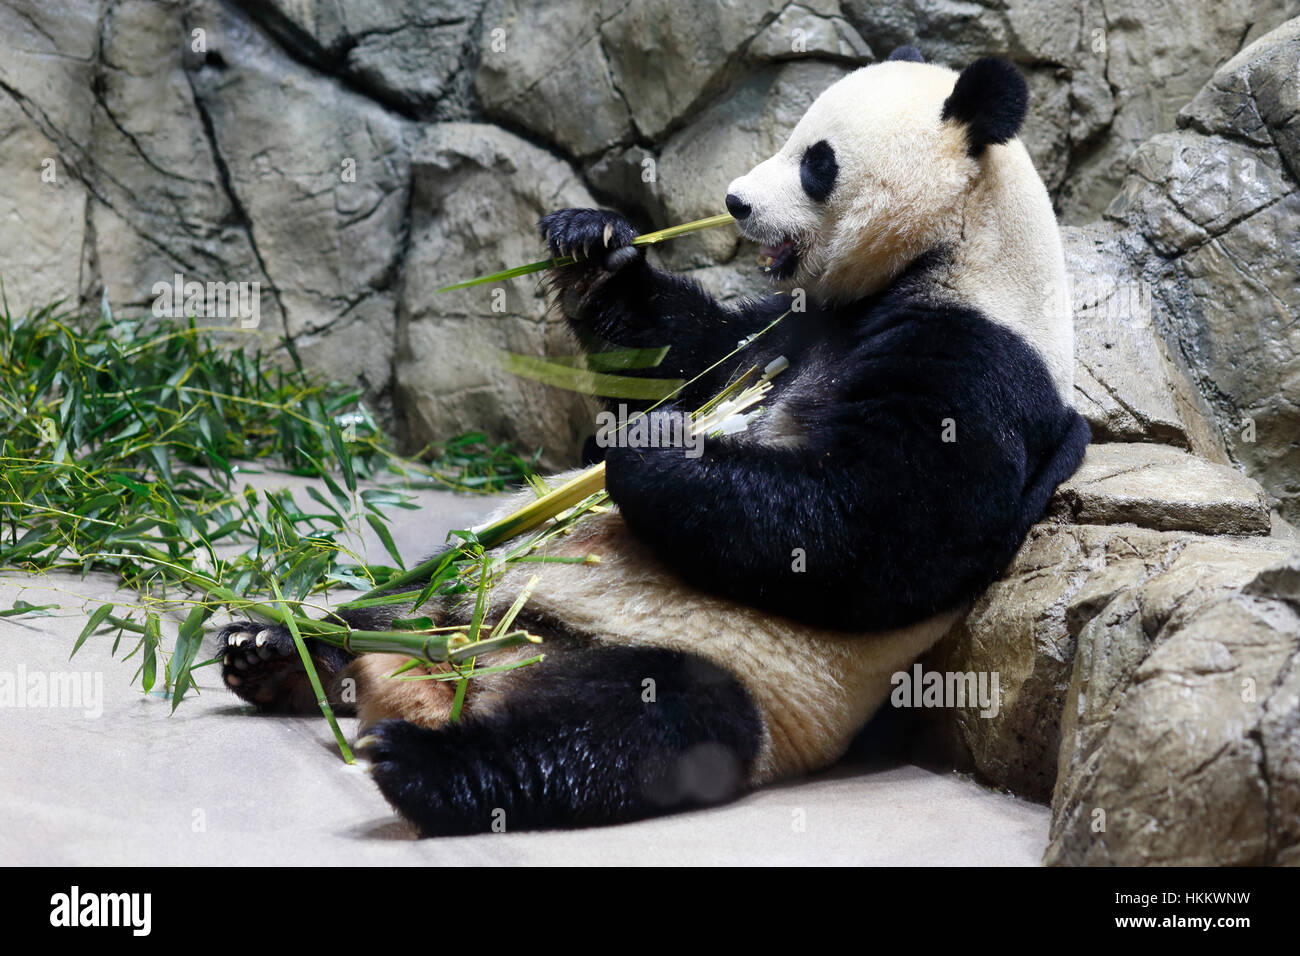 A giant panda reclining on a rock eating bamboo - Stock Image